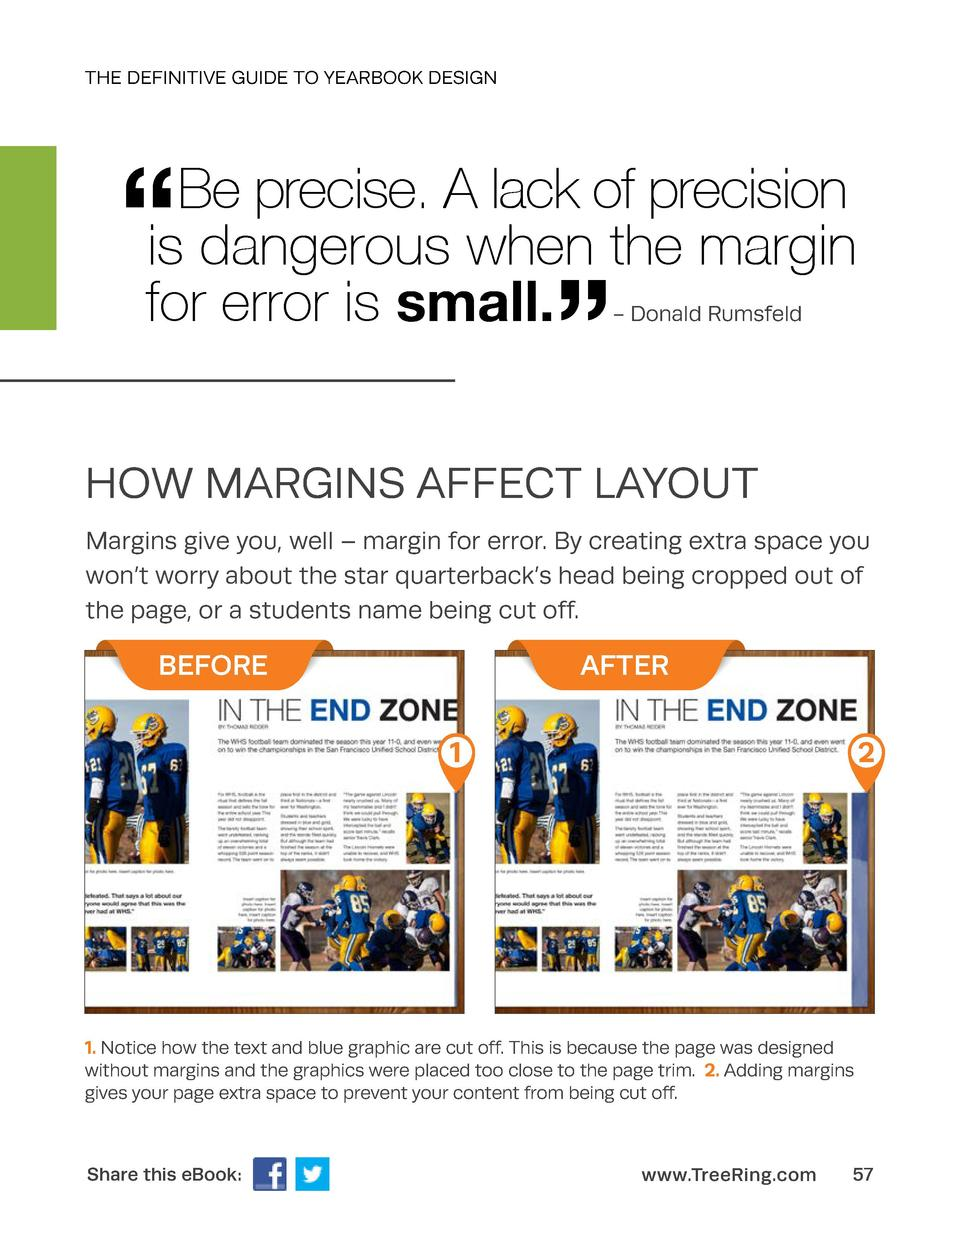 THE DEFINITIVE GUIDE TO YEARBOOK DESIGN       Be precise. A lack of precision is dangerous when the margin for error is sm...